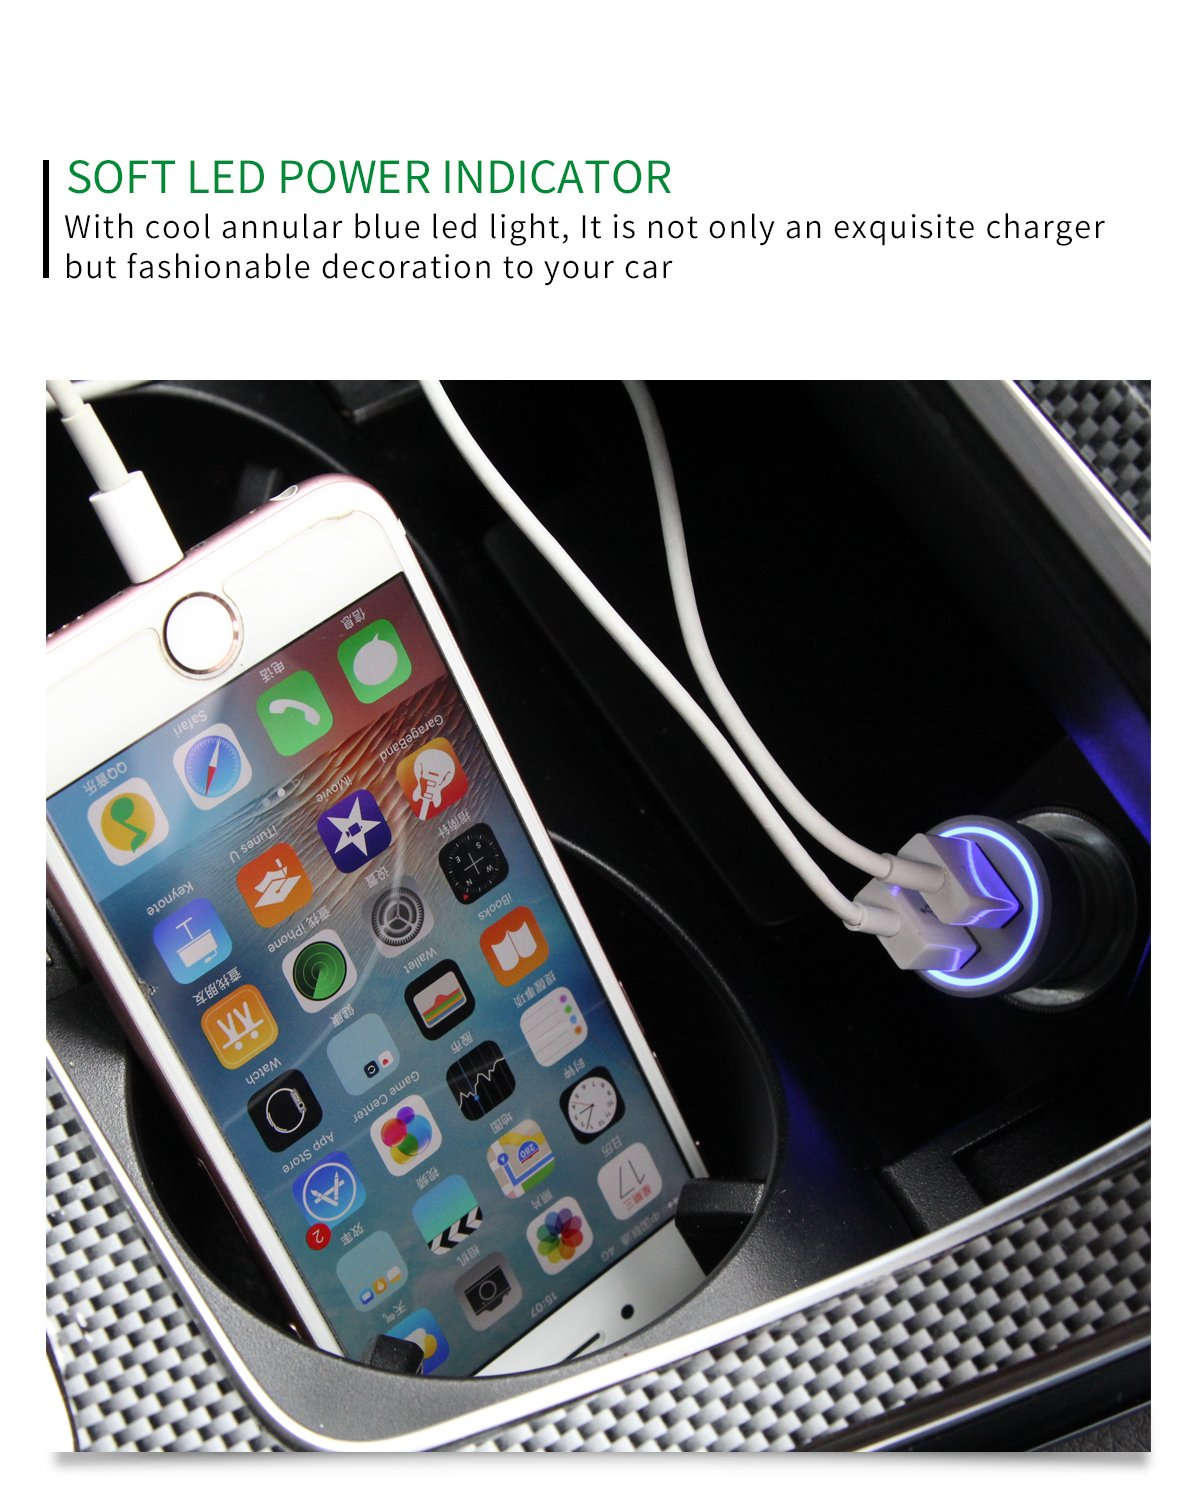 BULL Dual USB Car Charger with Lightning Cable 3.6A//18W Brass Made Safe and Fast Car Phone Charger with Charging Cable Apple MFi Certified Compatible with iPhone, iPad Compatible with iPhone/, iPad CB-U118CK02C